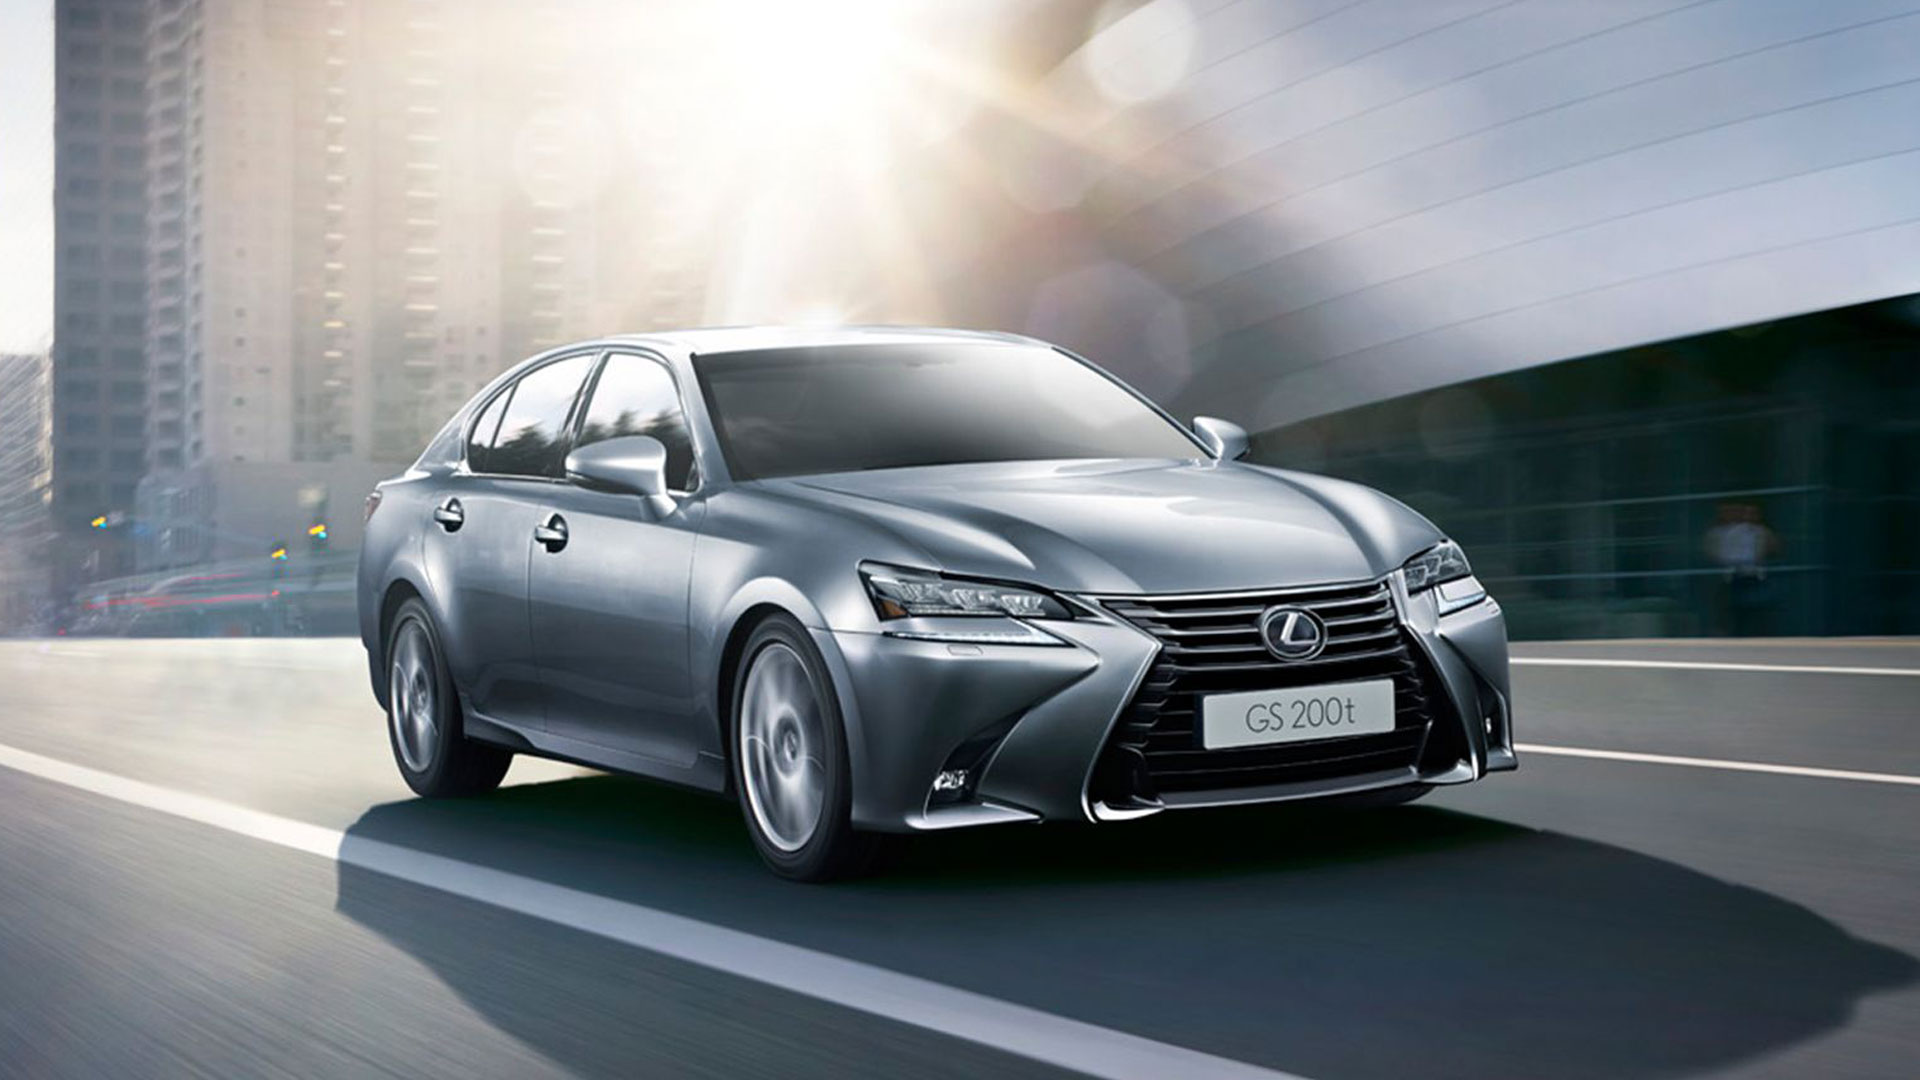 2017 lexus gs 200t next steps personalize